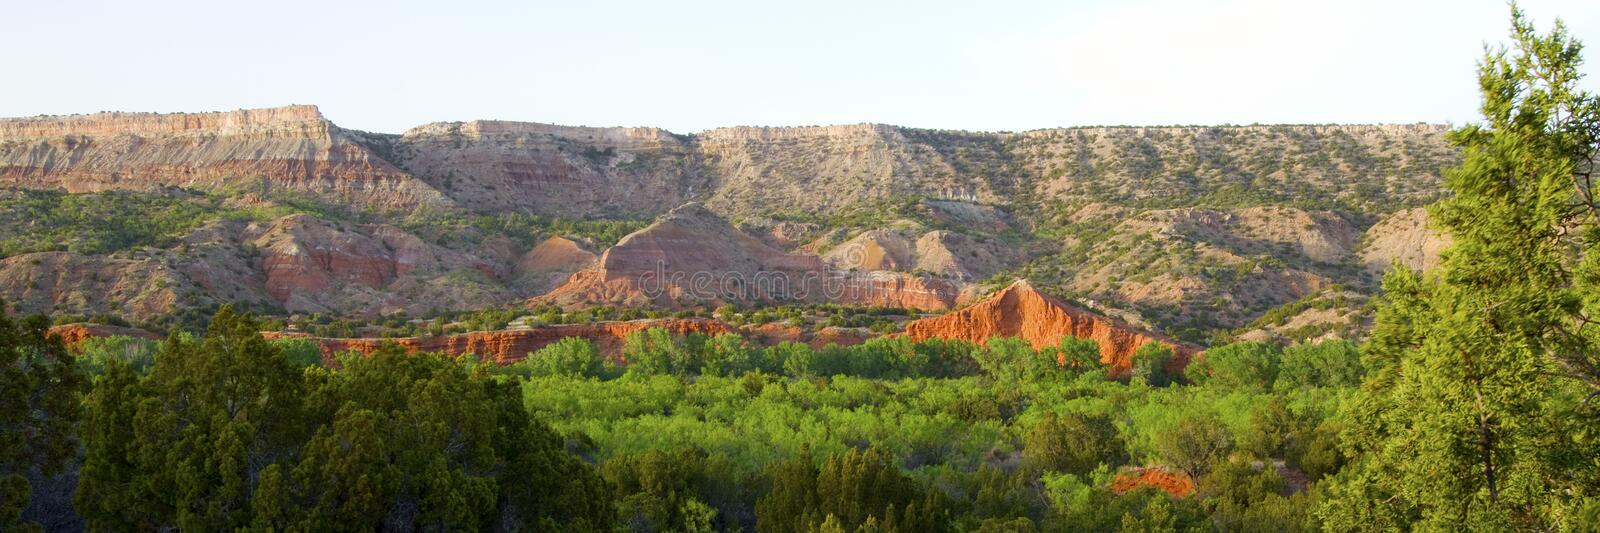 Palo Duro Canyon State Park, Texas stock image